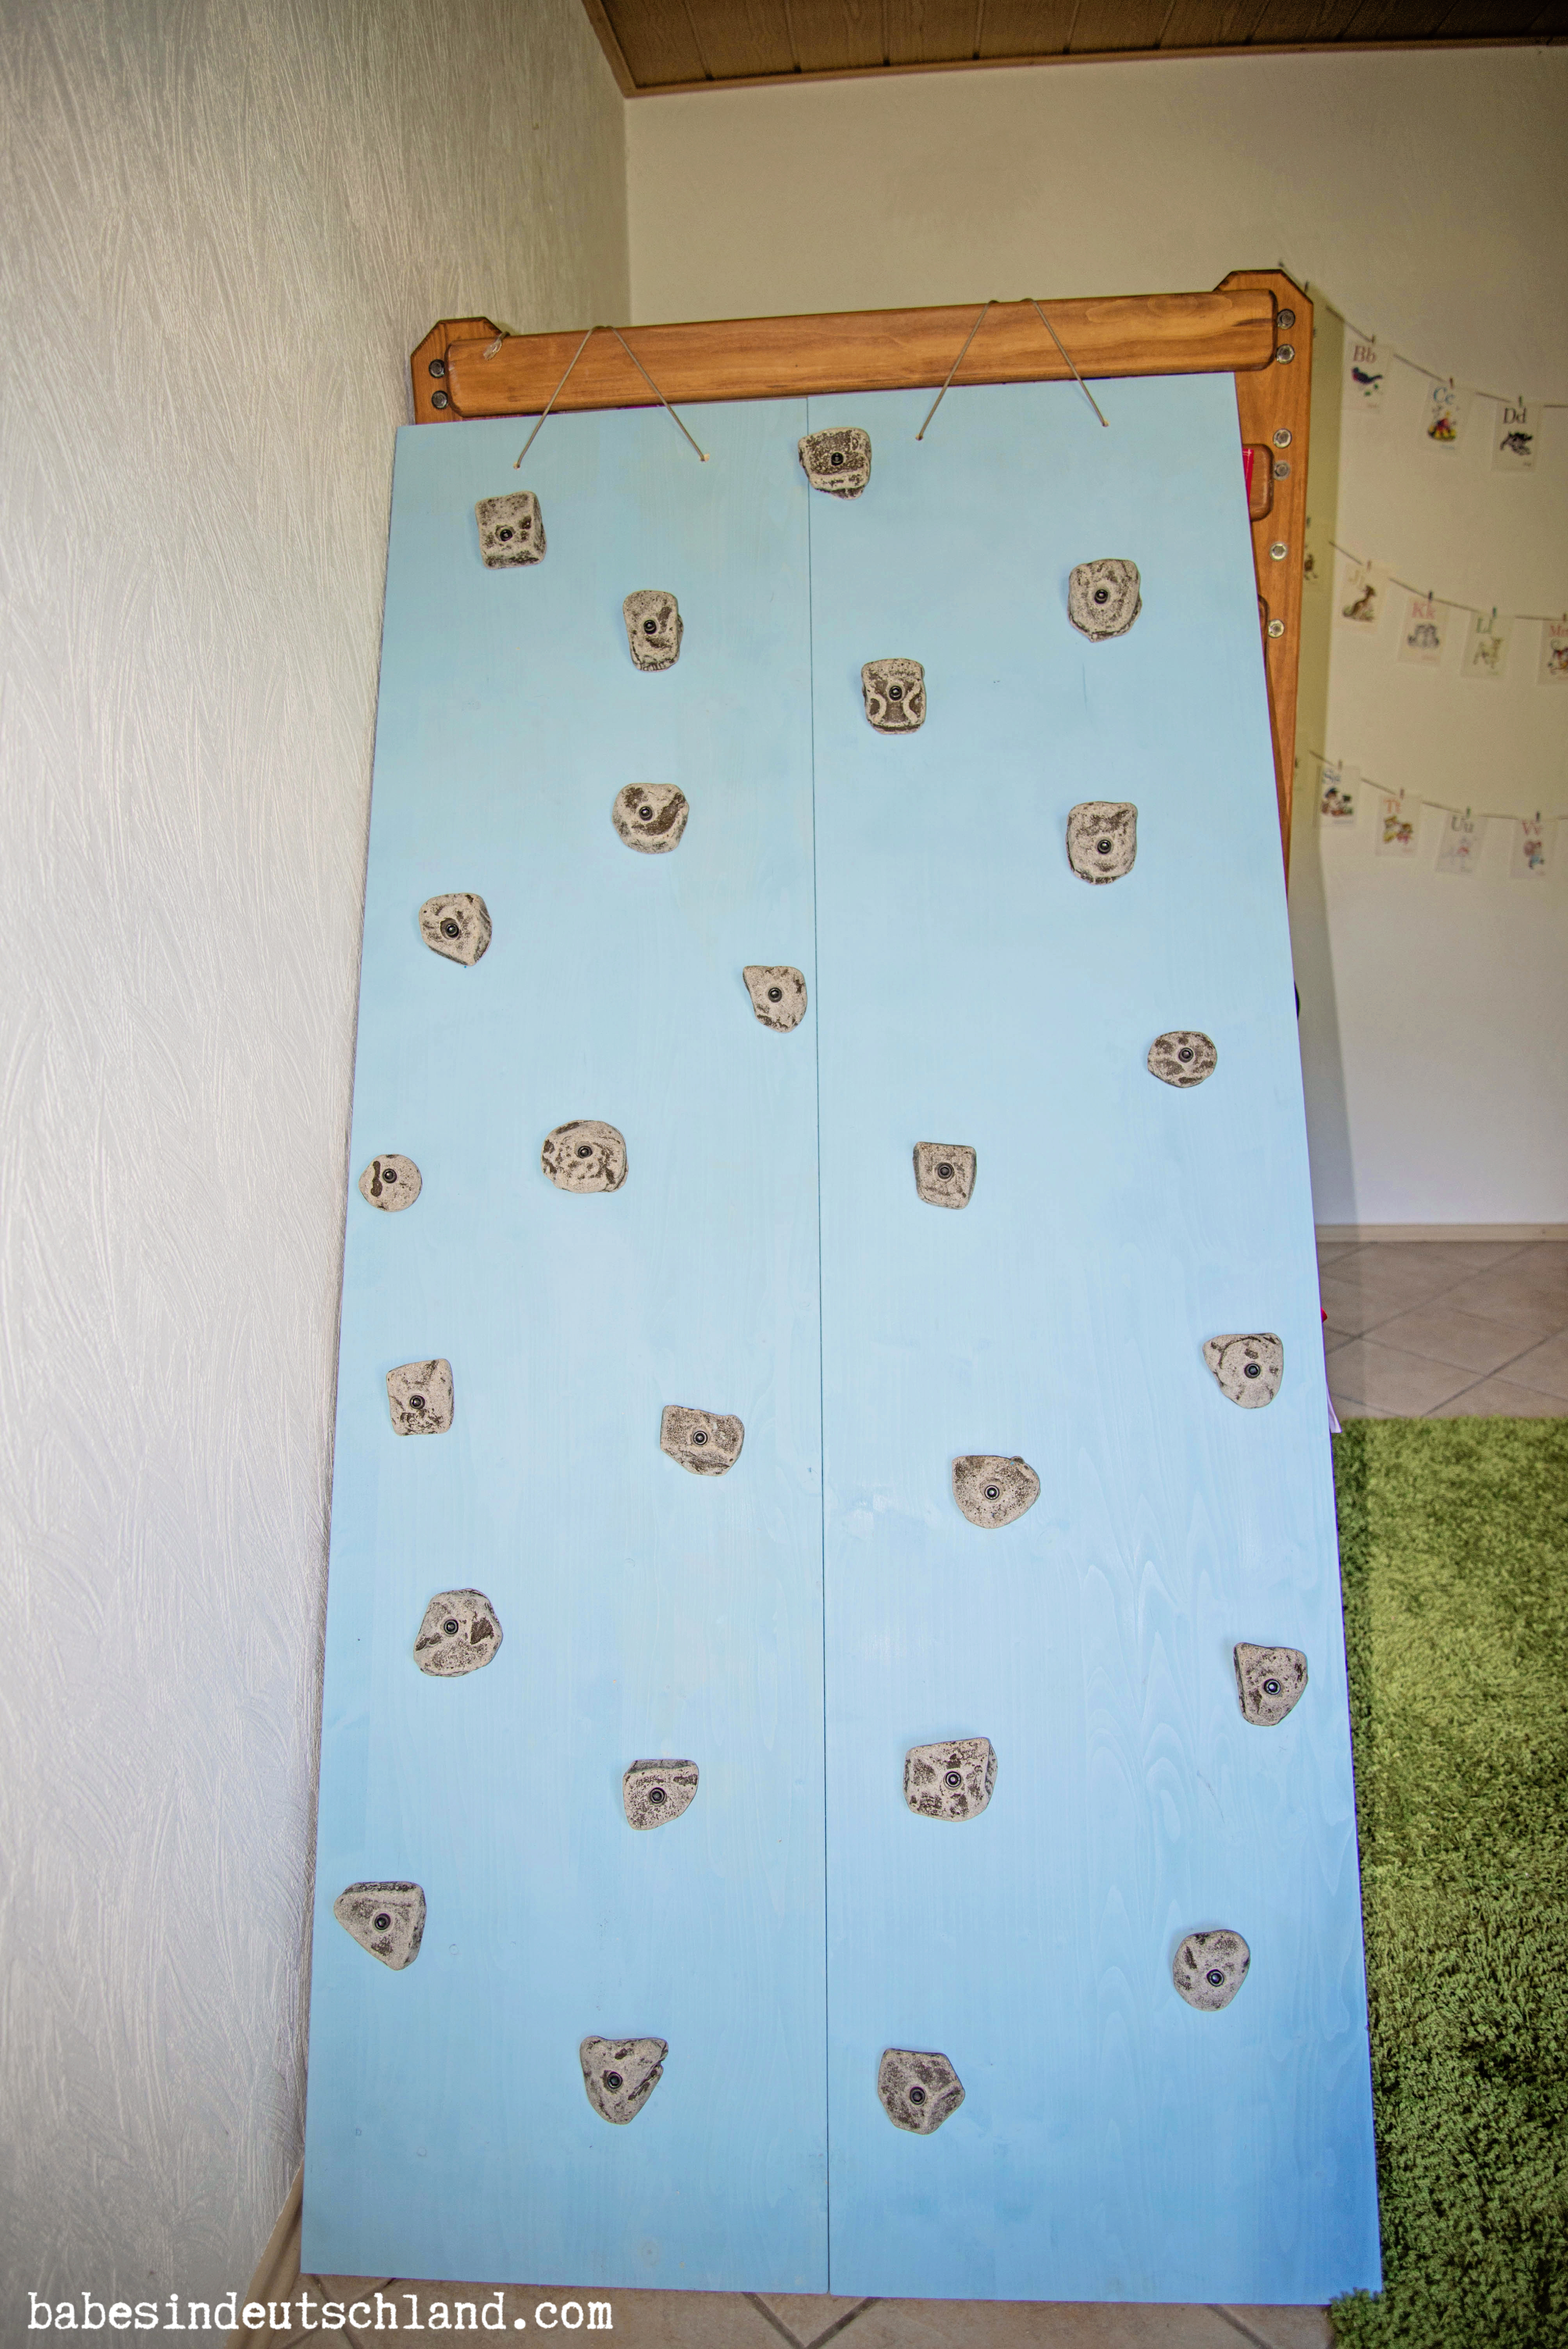 Babes in Deutschland, rock wall built on to a loft bed